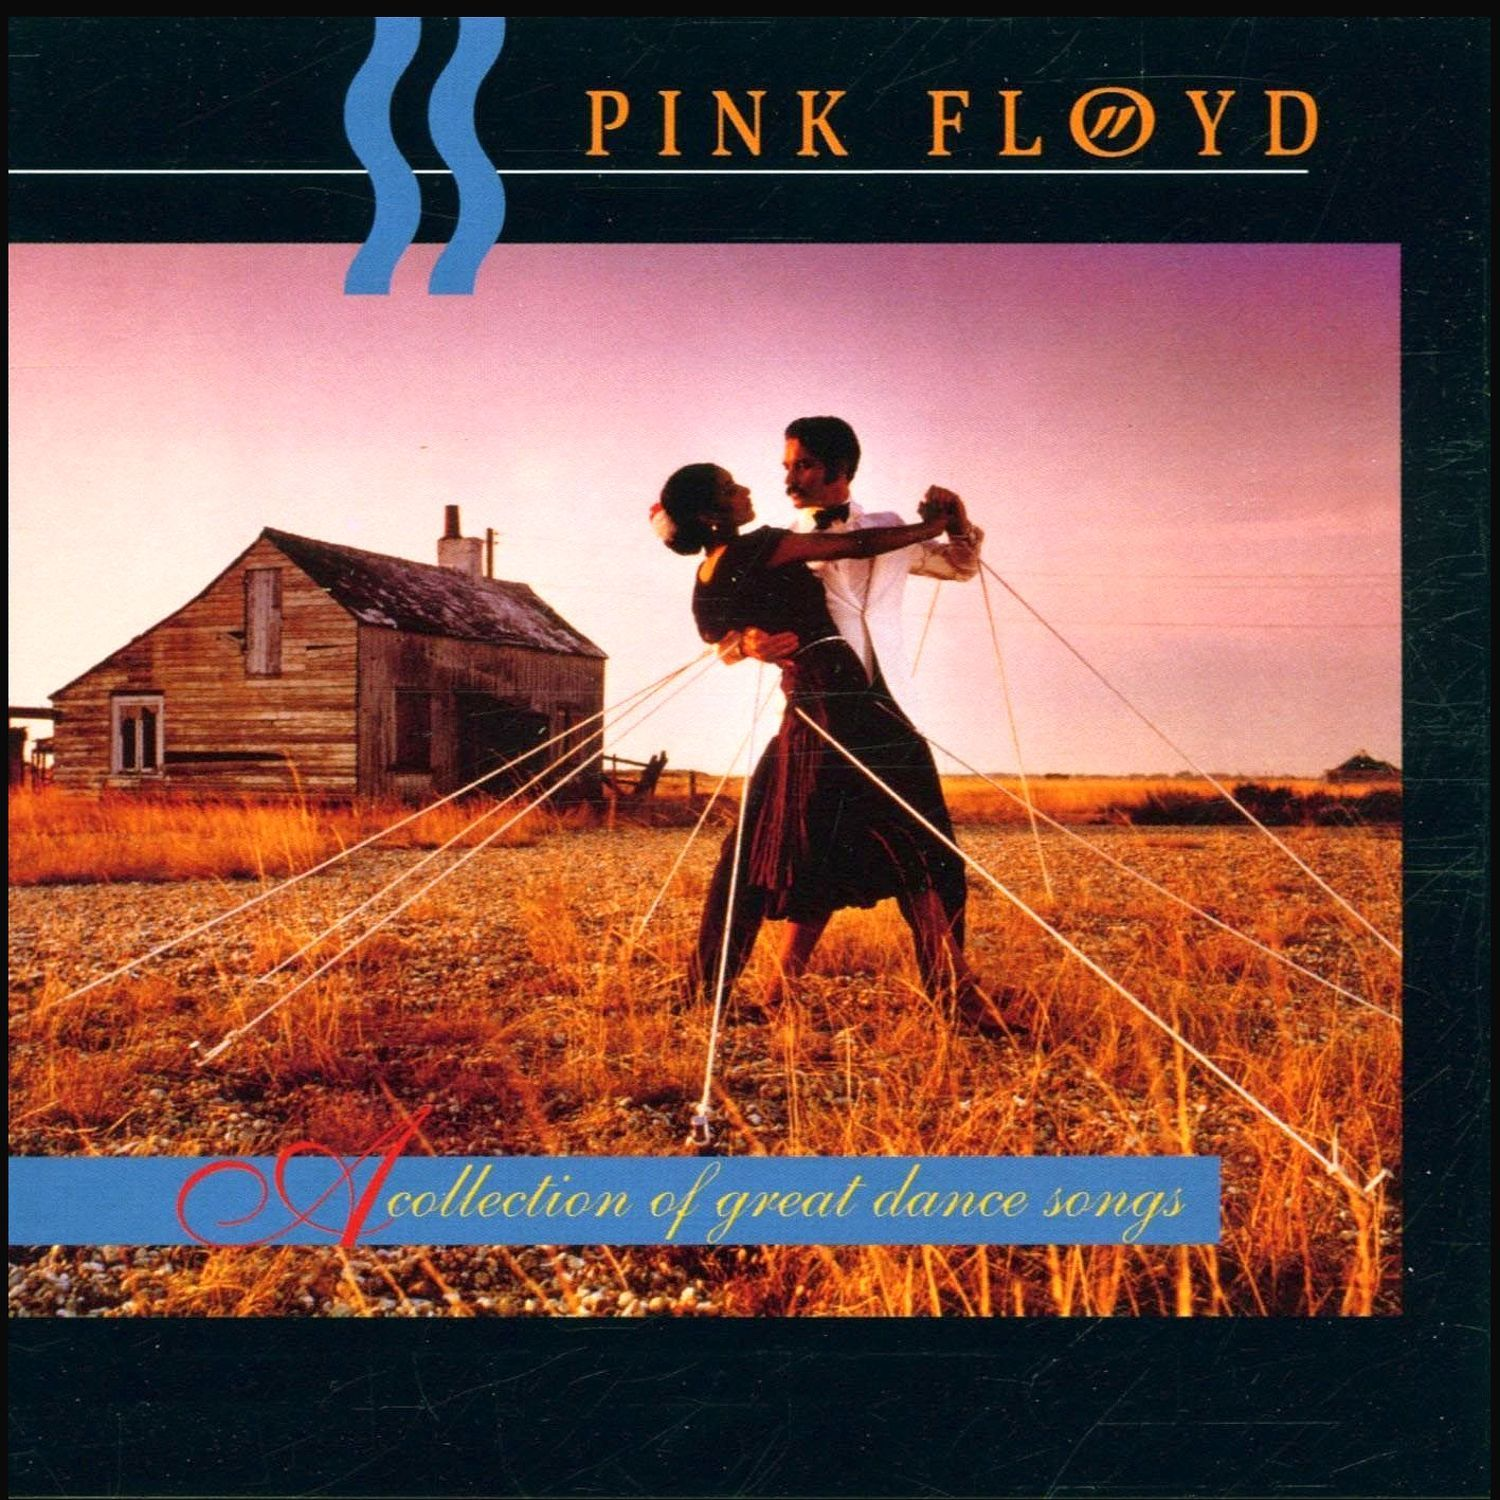 Pink floyd album covers recherche google cover disk for House music albums